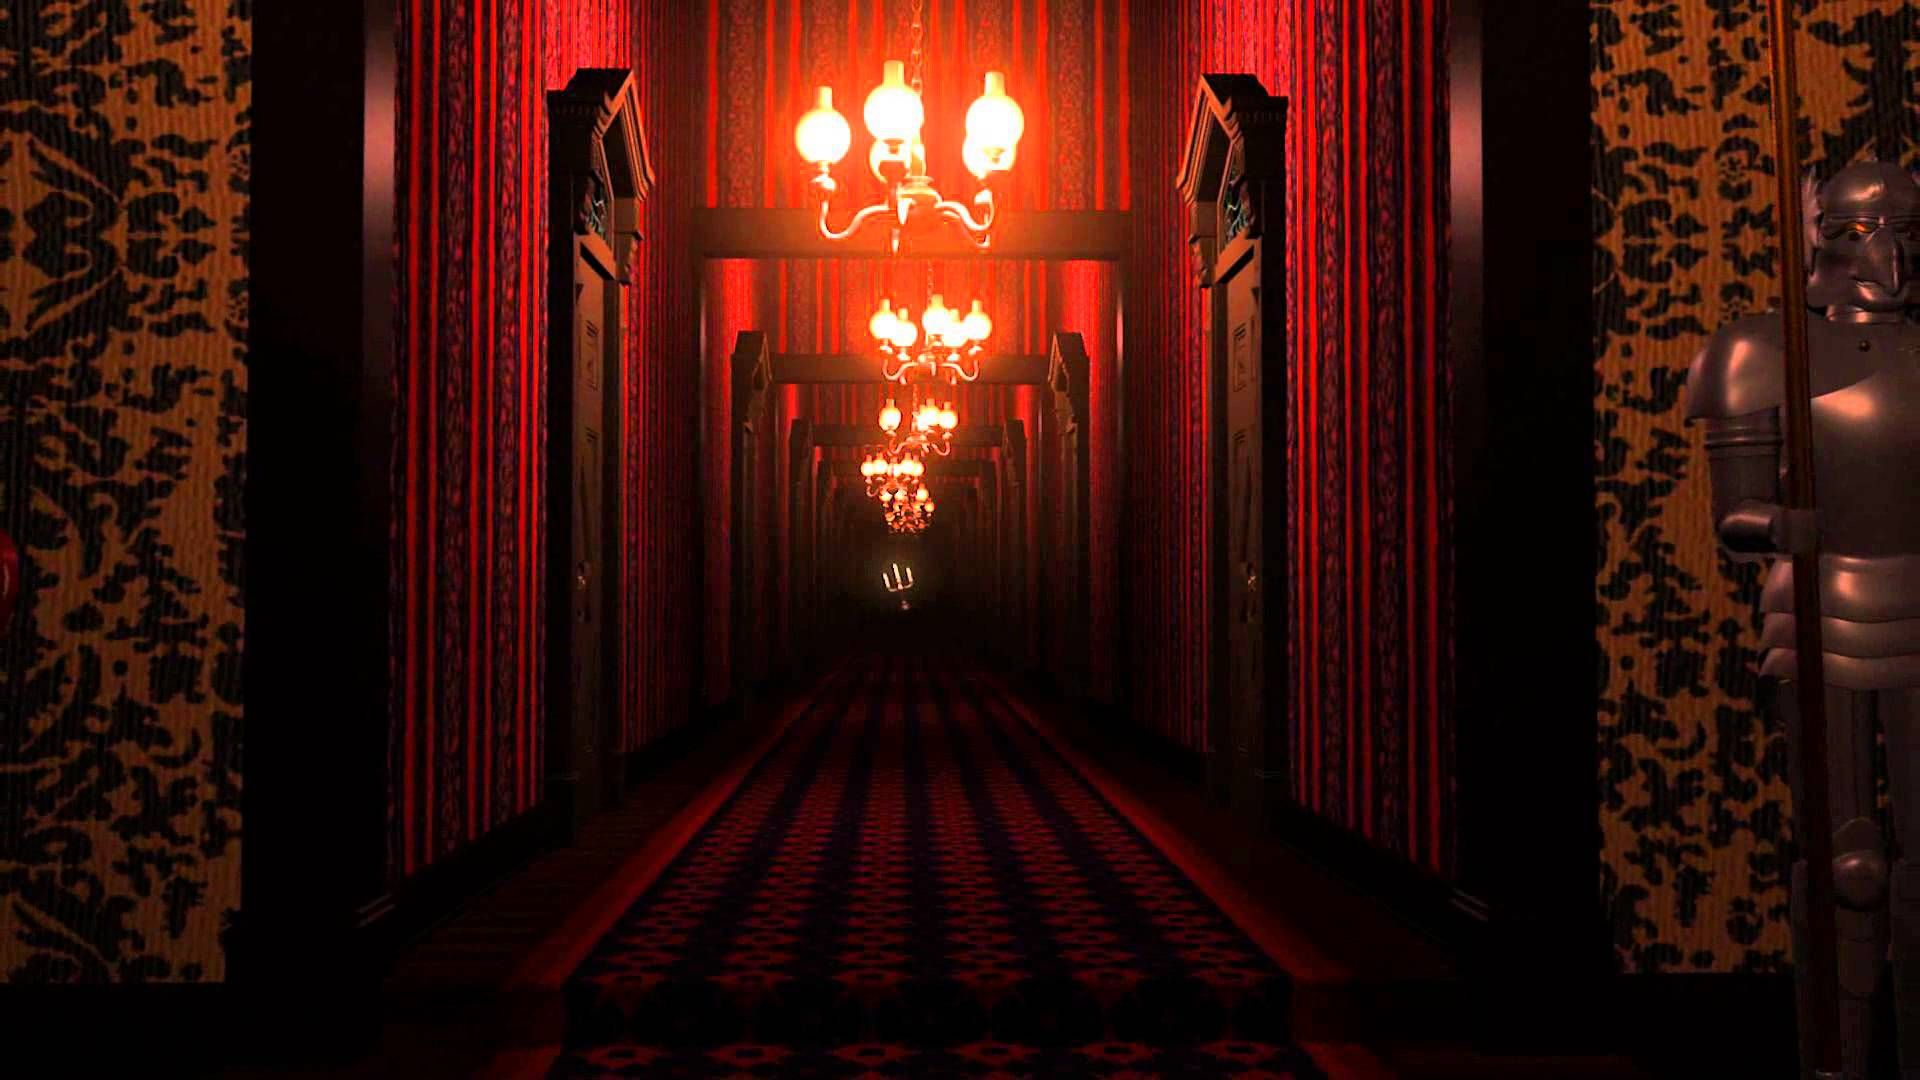 A Short Preview Of The Endless Hallway Sequence From My